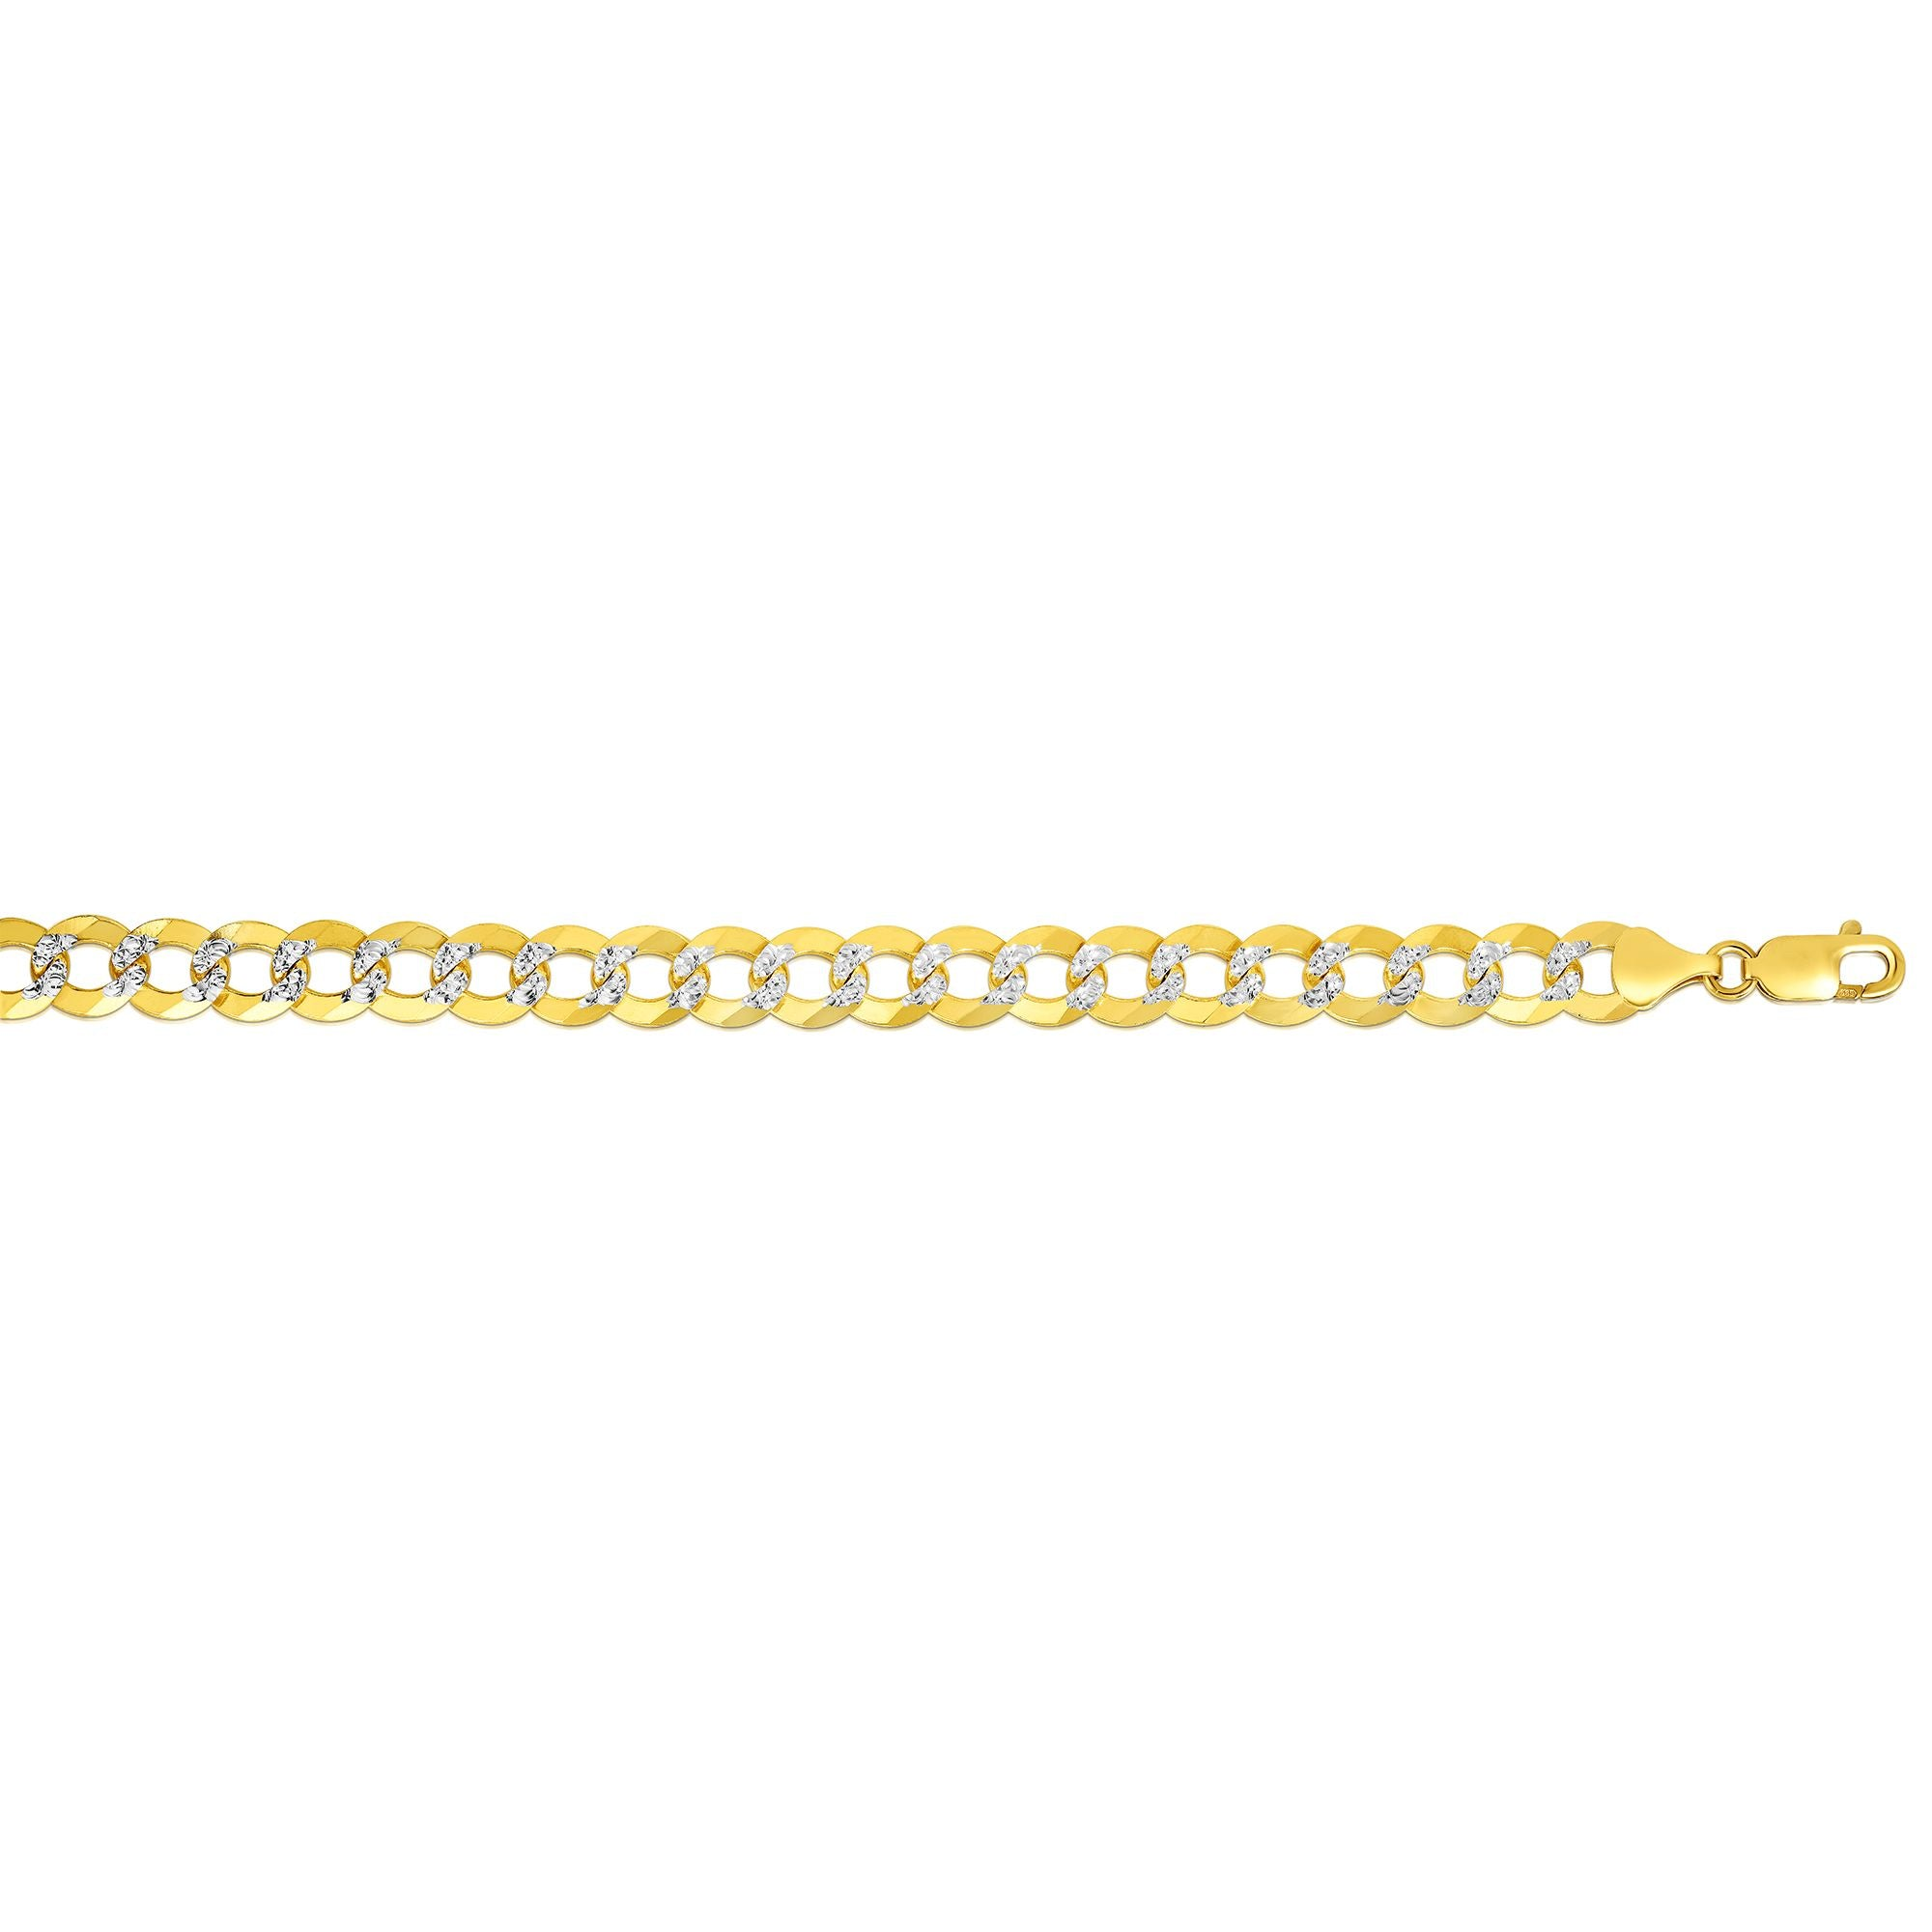 14K Gold 8.3mm White Pave Curb Chain